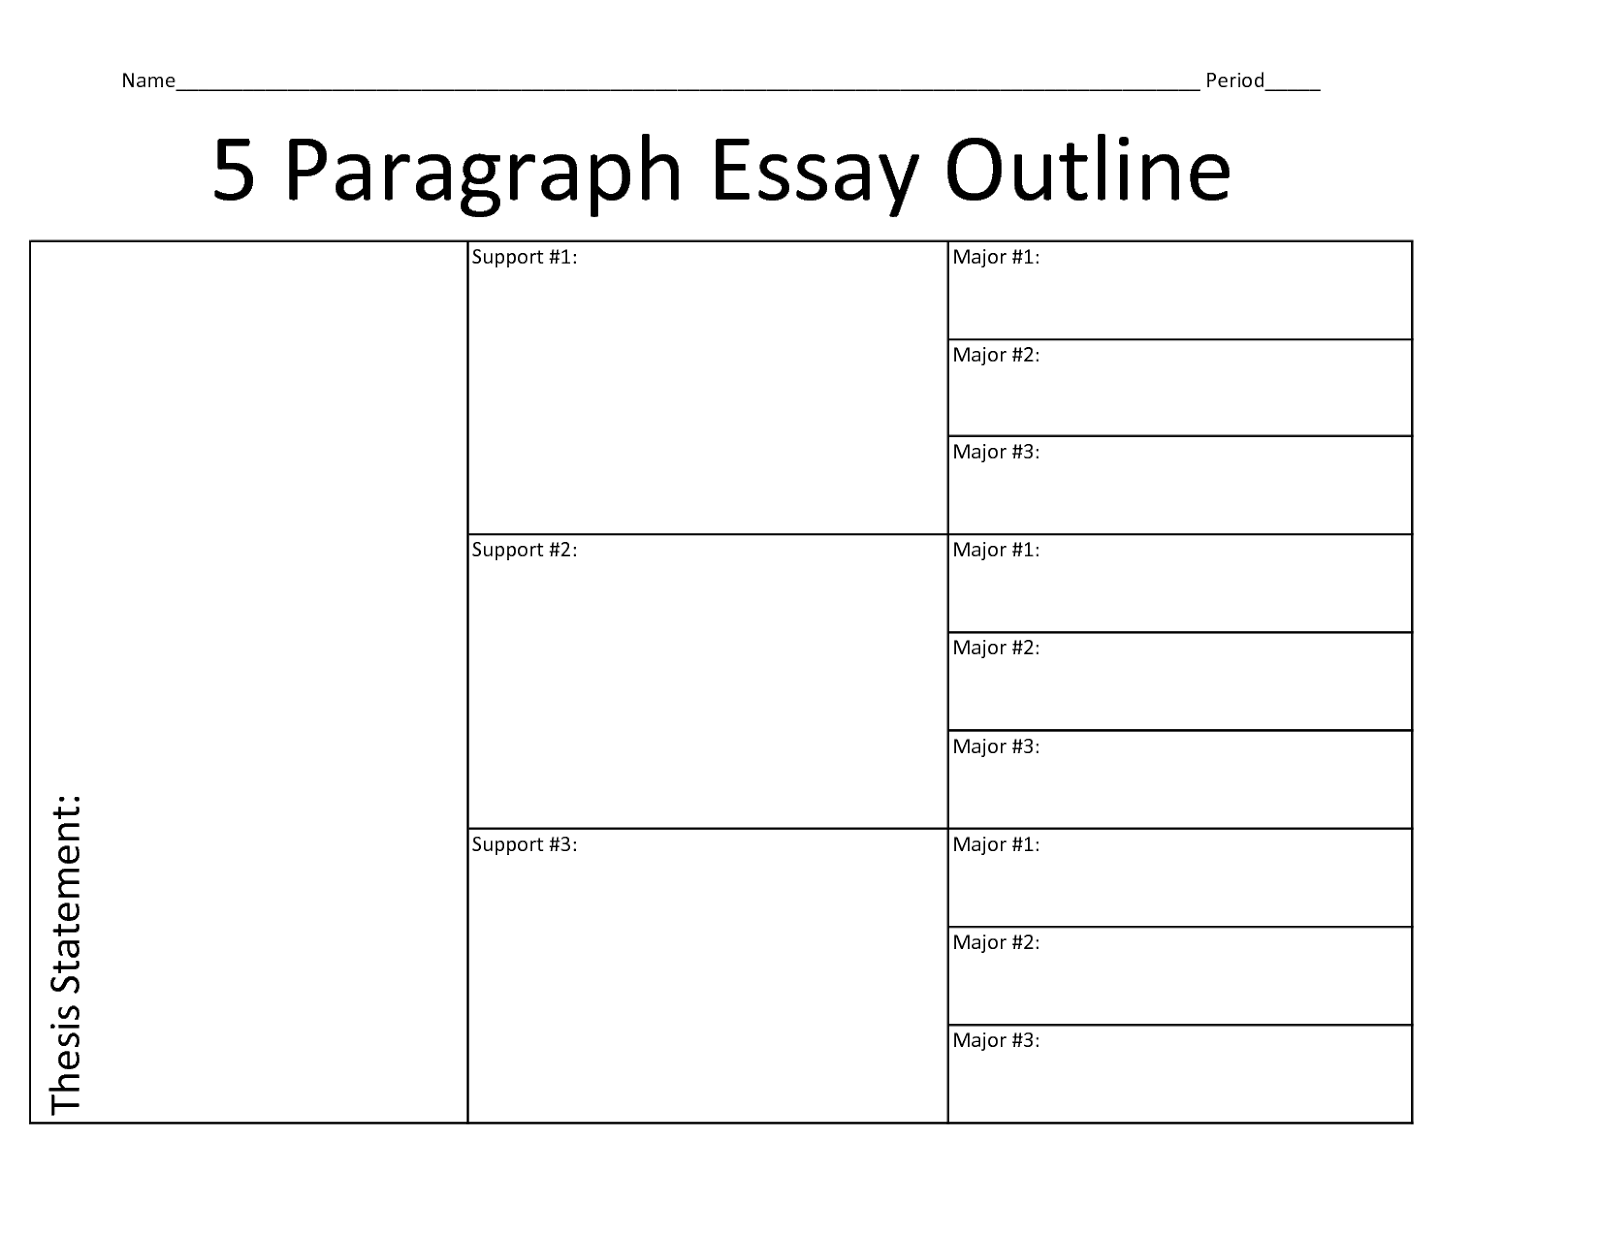 Primary 2 english essays for children